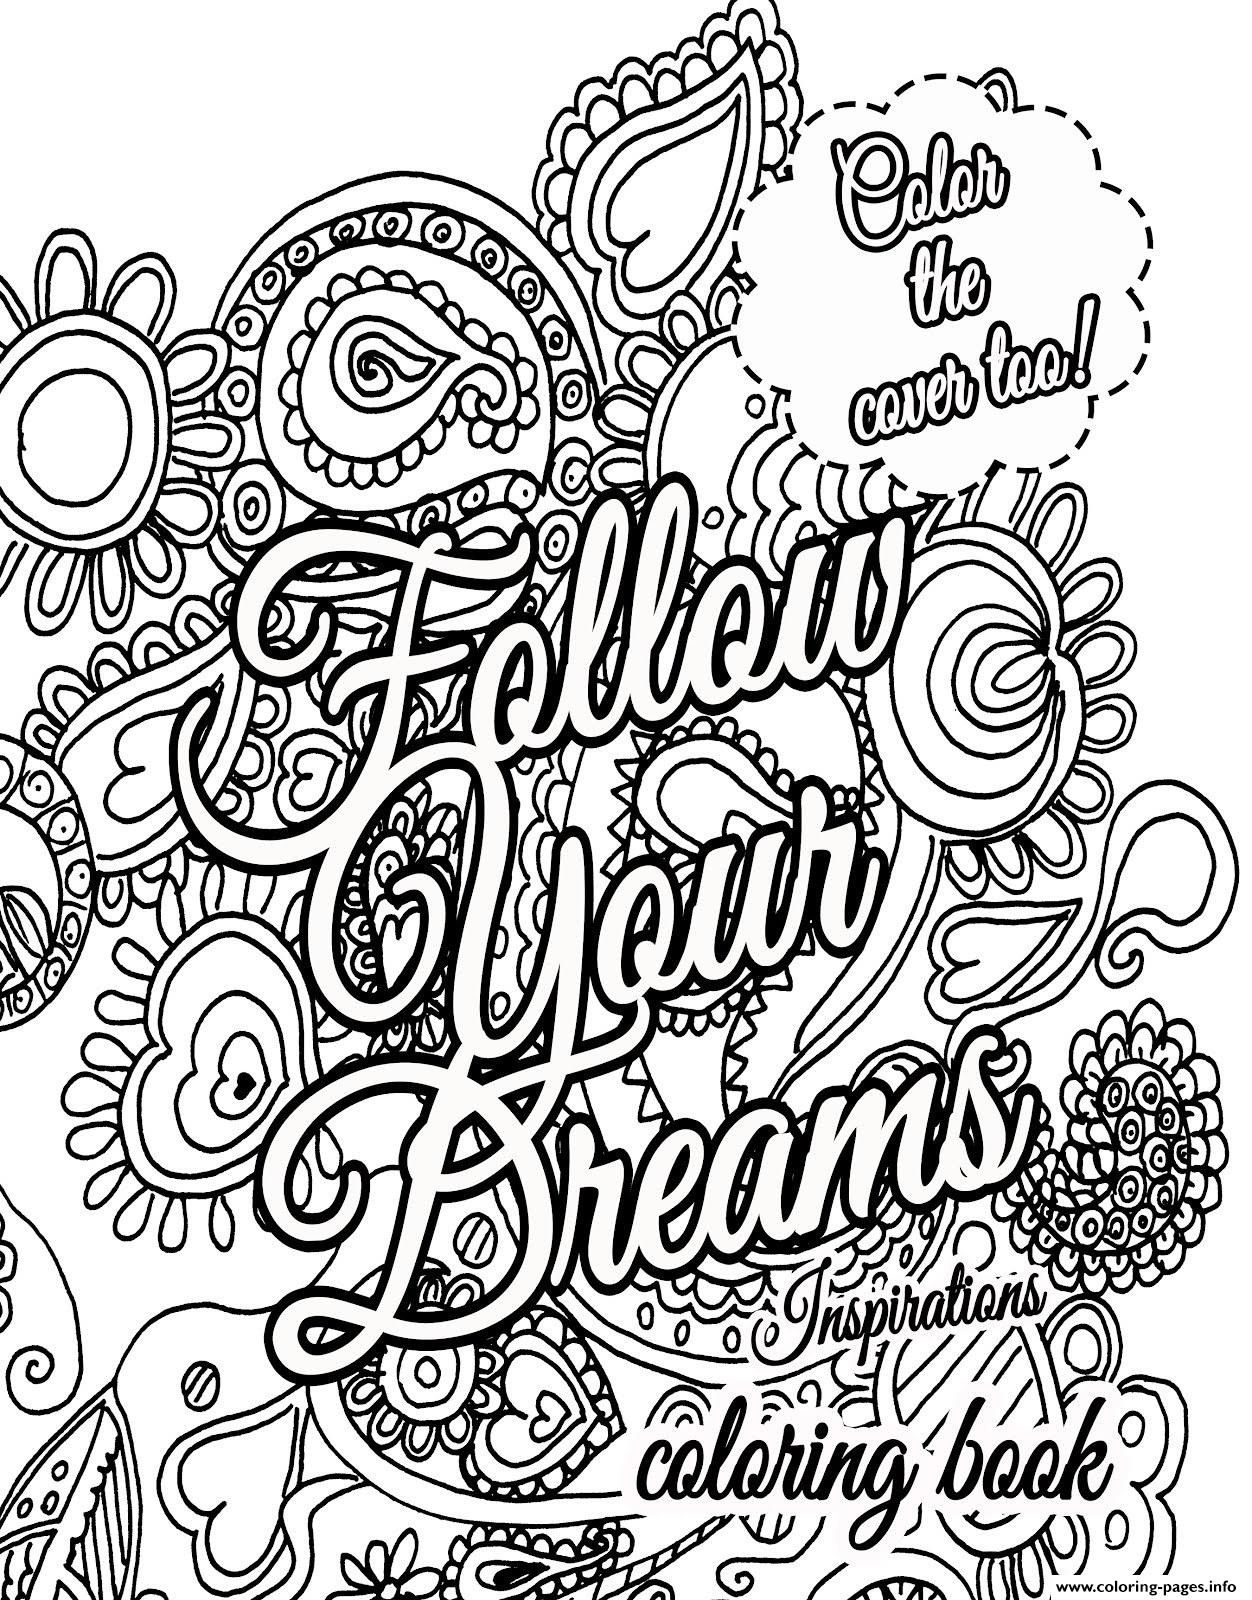 Coloring ~ Dr Seuss Quoteg Pages Inspirational Printable Free To - Free Printable Quote Coloring Pages For Adults